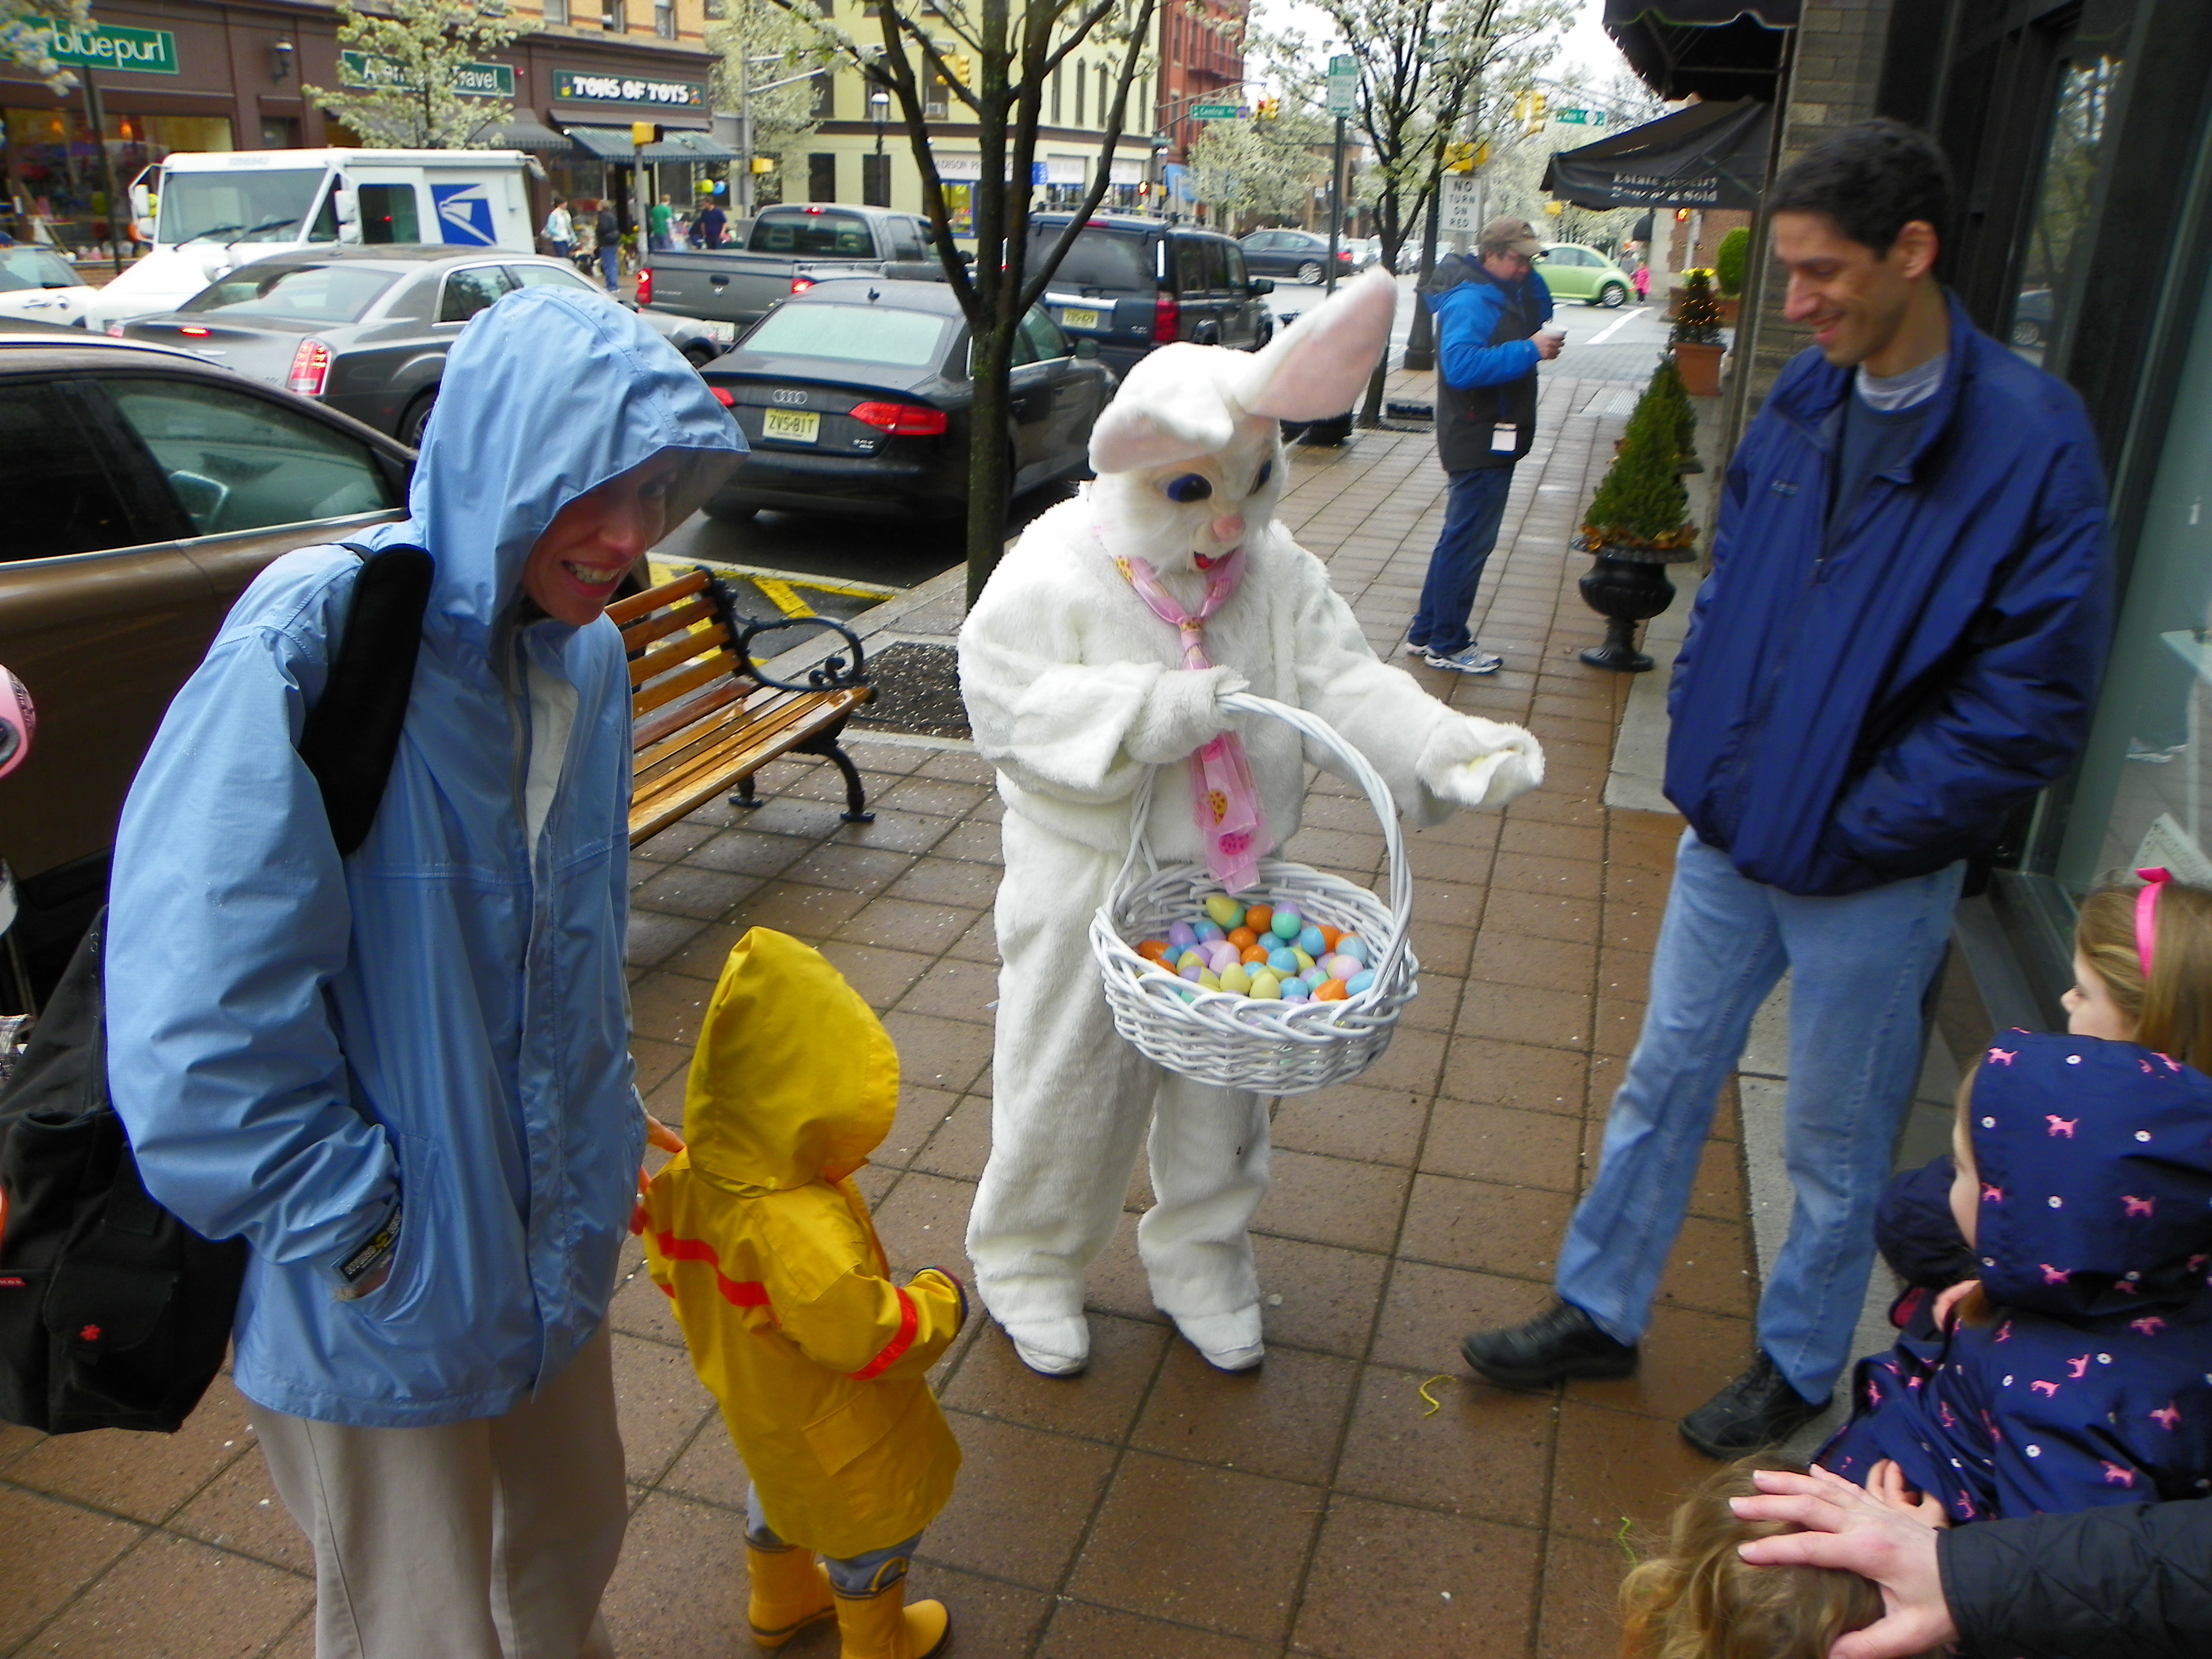 f901f5b6cf598b692f7b_Easter_Fun_Fest_2012_photo_Bunny.jpg